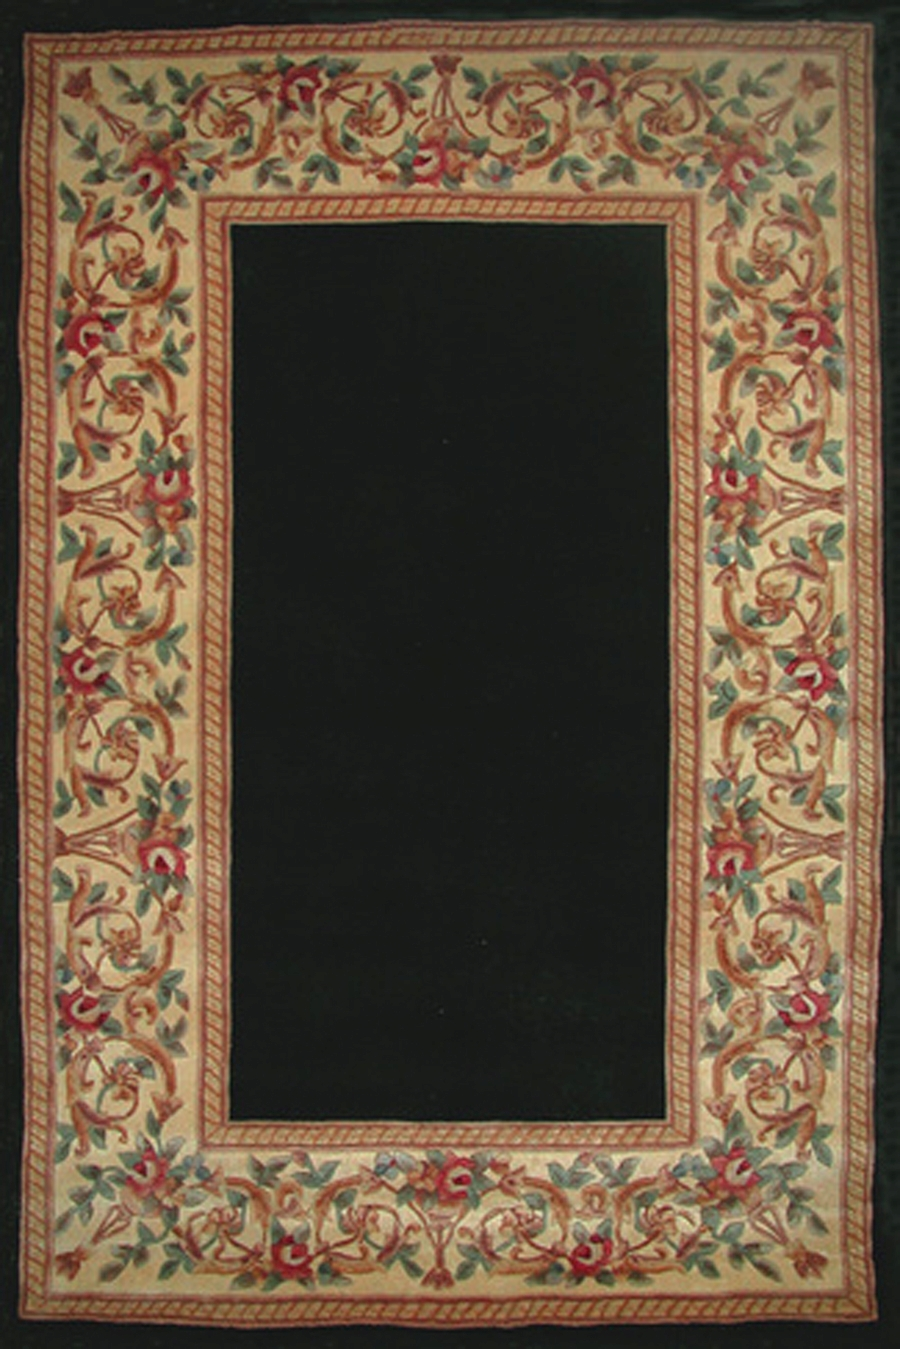 Kas Ruby 8941 Black Floral Border Rug